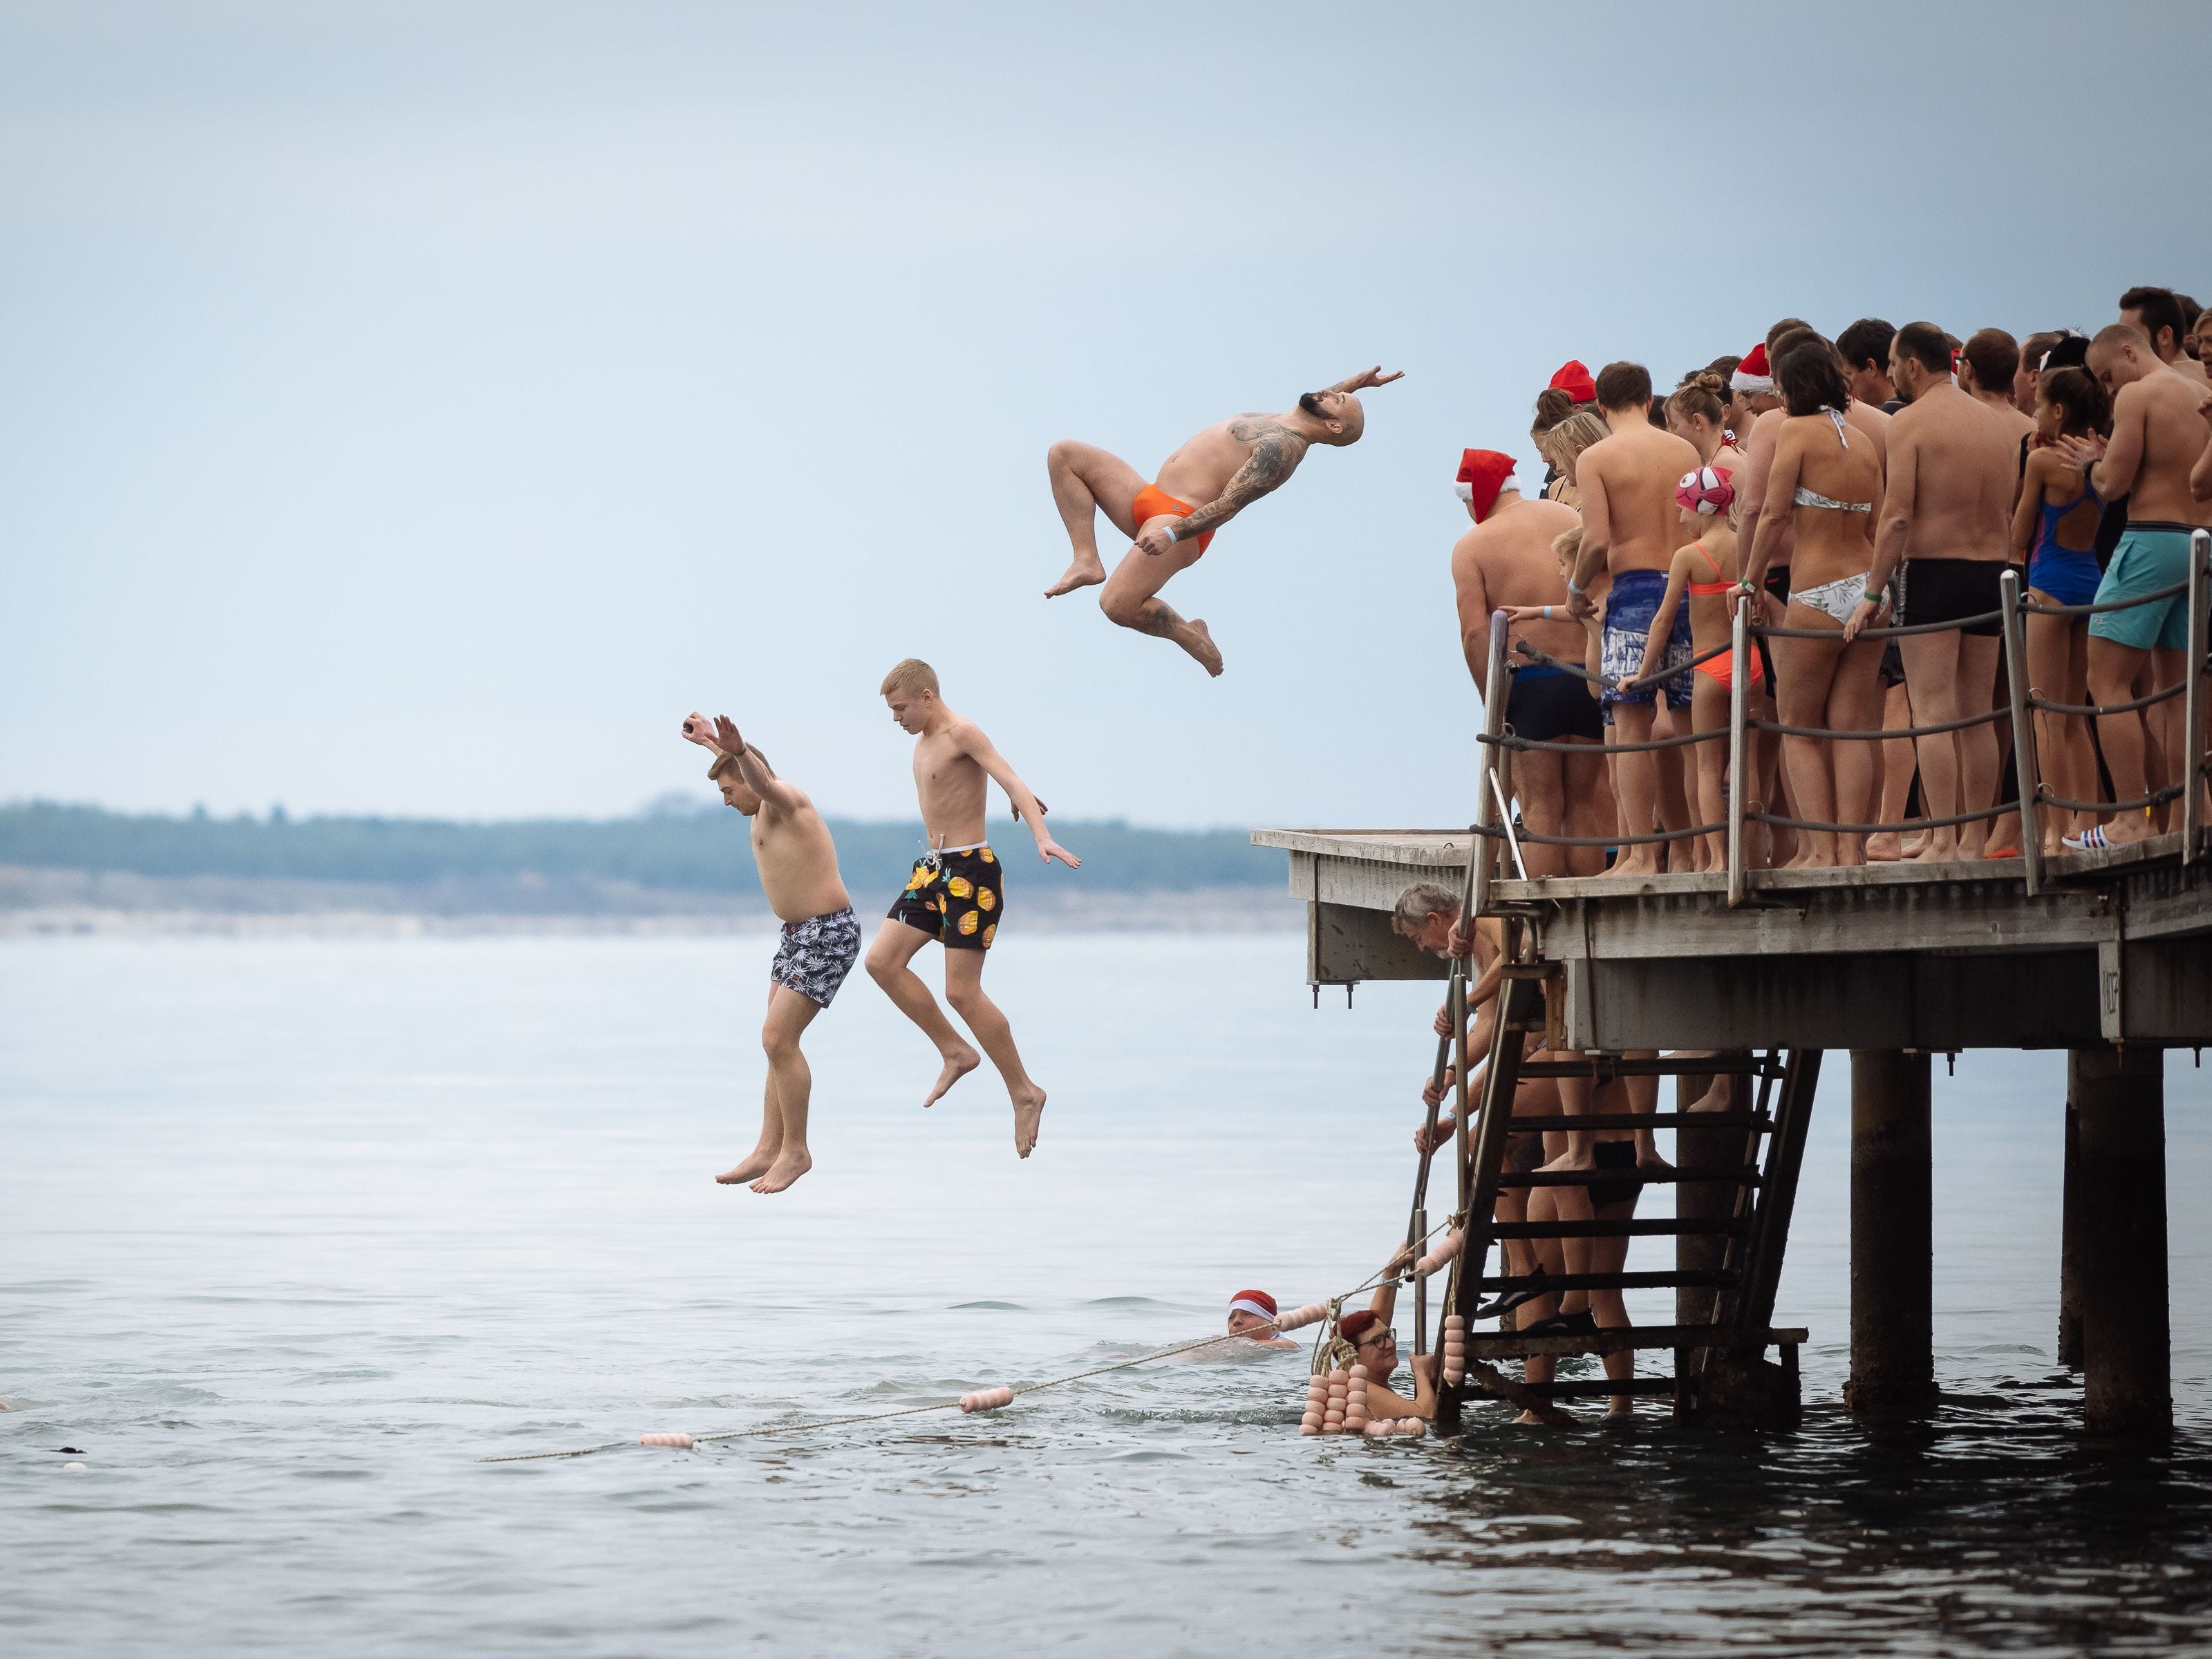 People jump into the water during a traditional New Year's swim in the Adriatic sea in Portoroz, Slovenia.